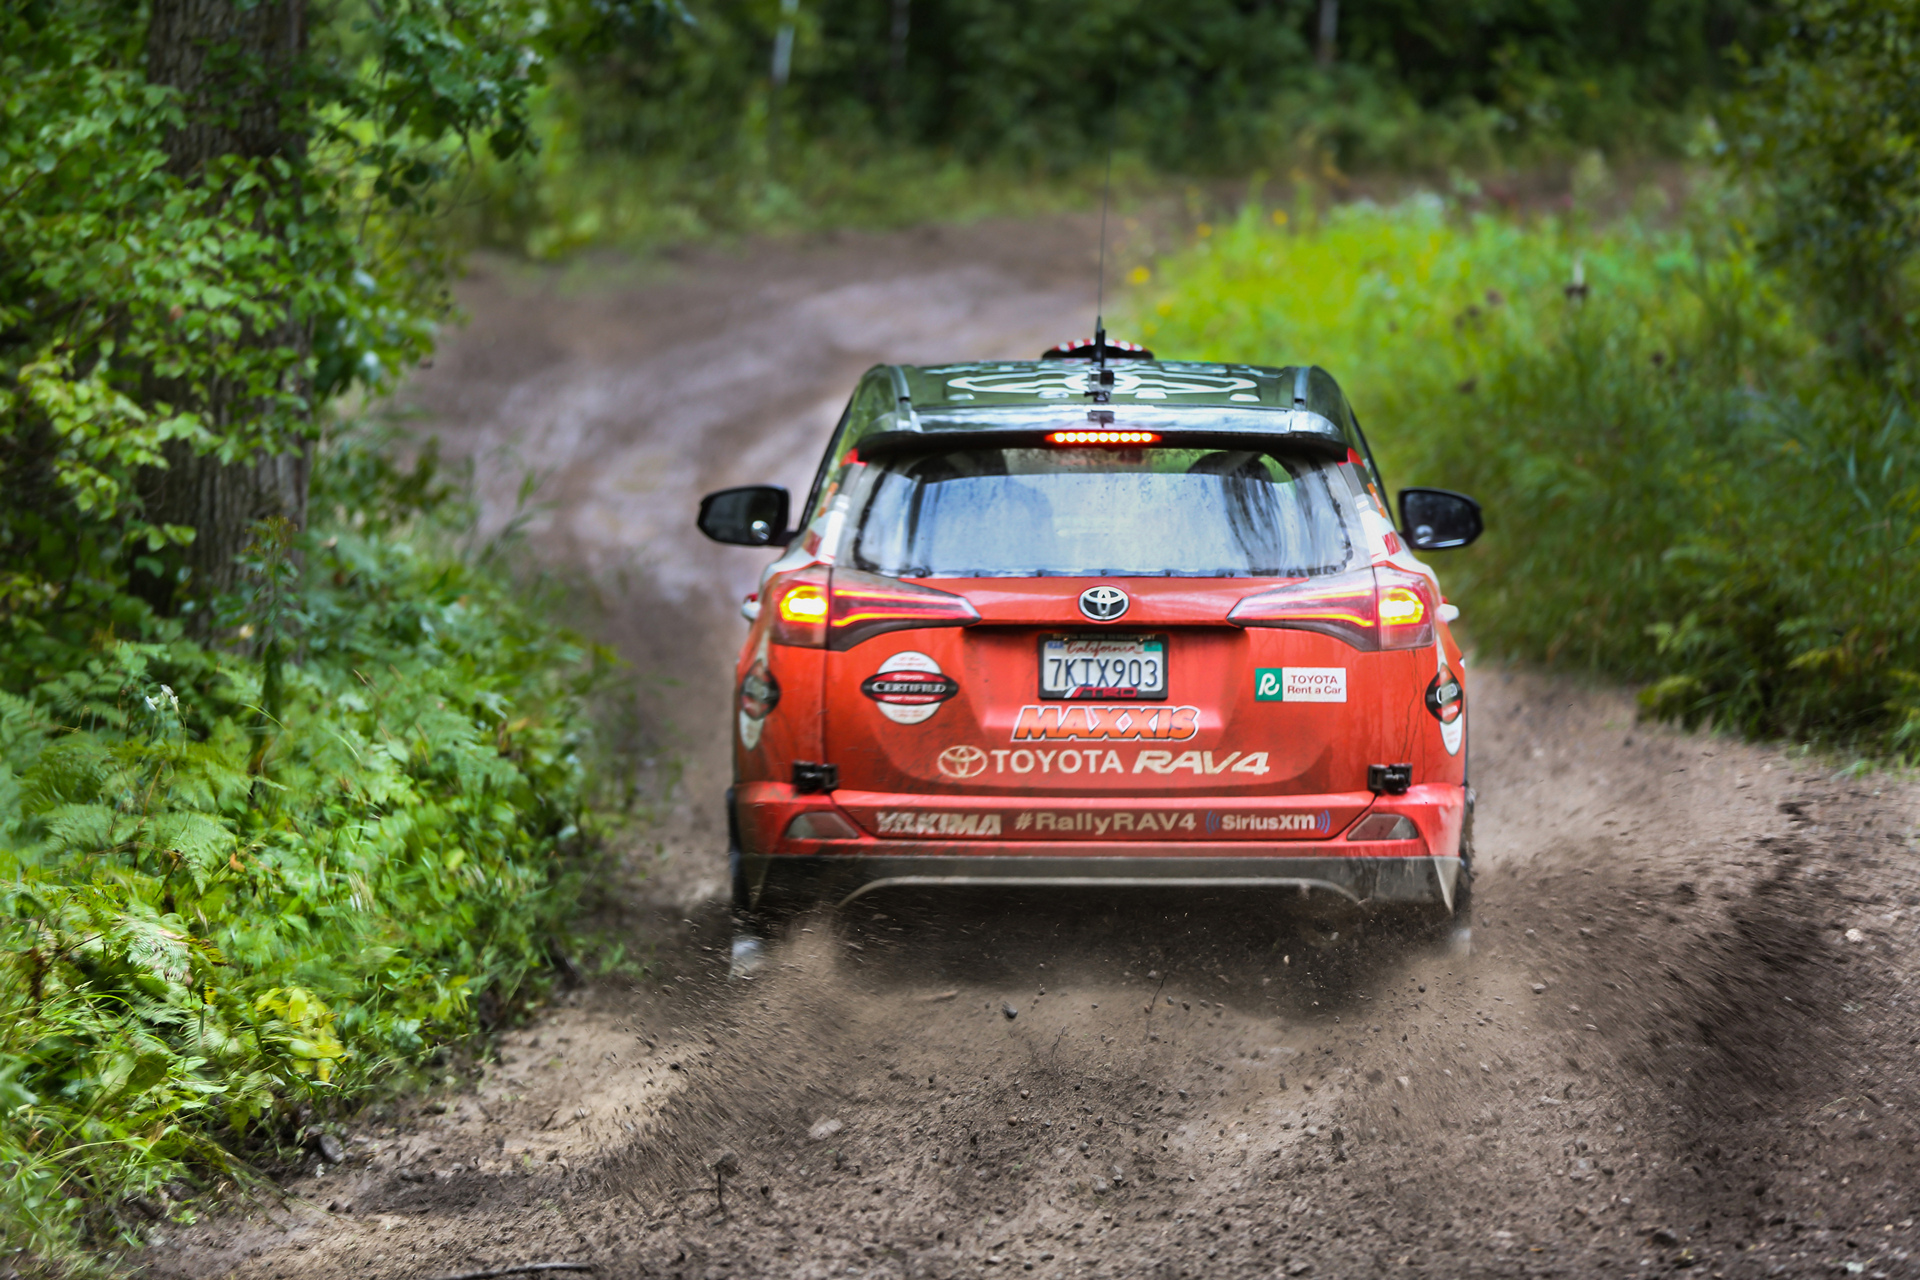 2016 Rally RAV4 - Ojibwe Forests Rally © Toyota Motor Corporation